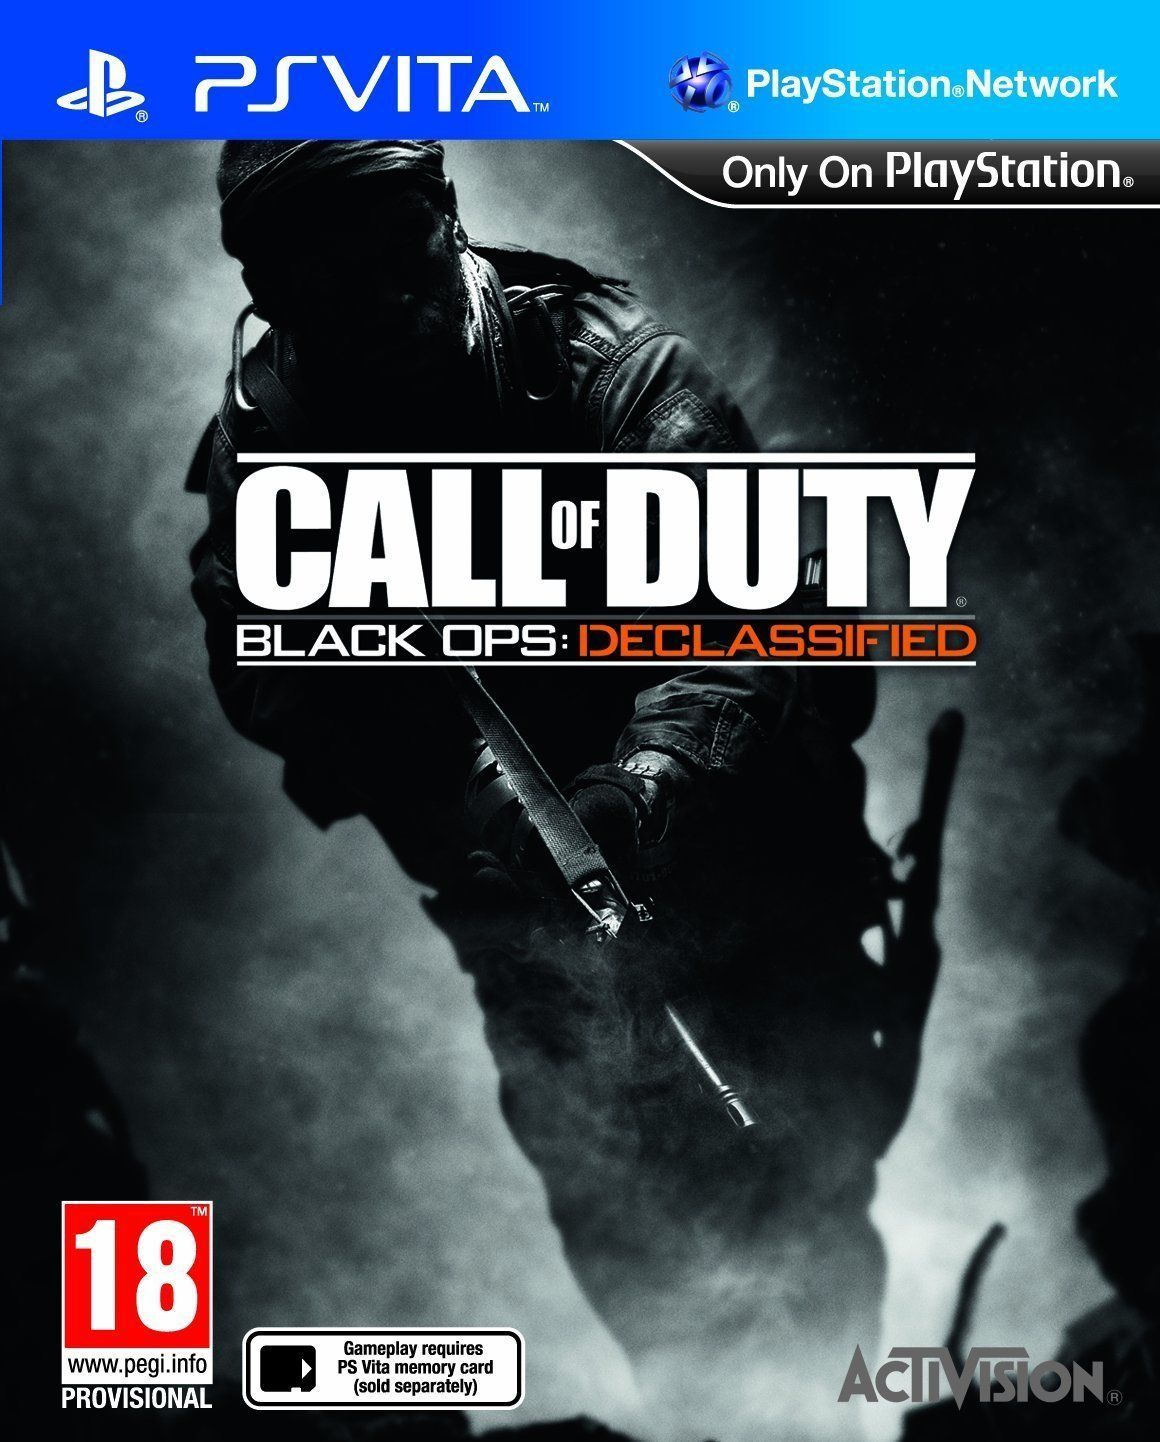 [PSVita] Call of Duty: Black Ops Declassified [EUR/RUSSOUND]